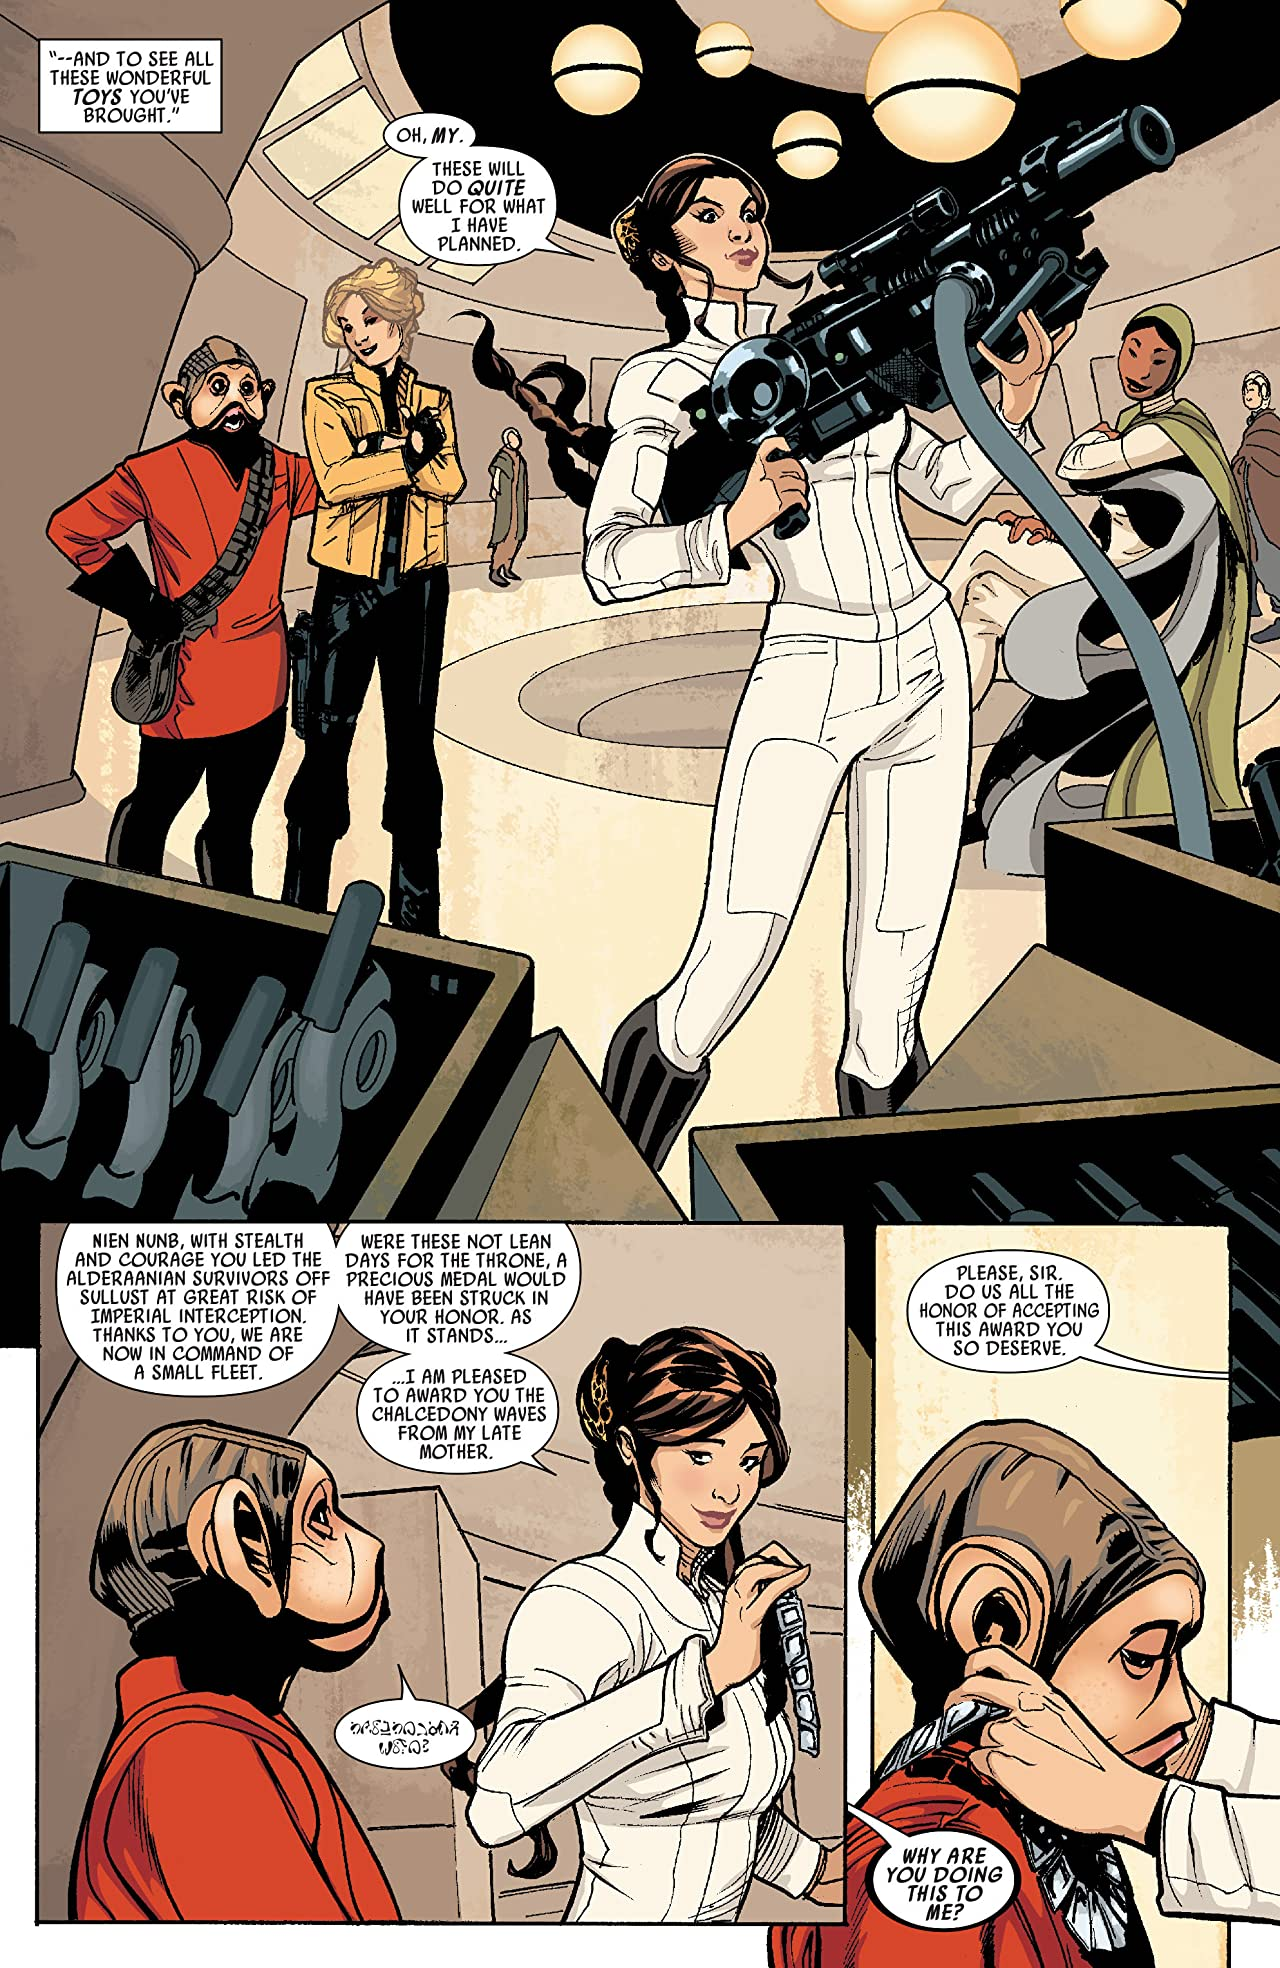 Princess Leia (2015) #4 (of 5)